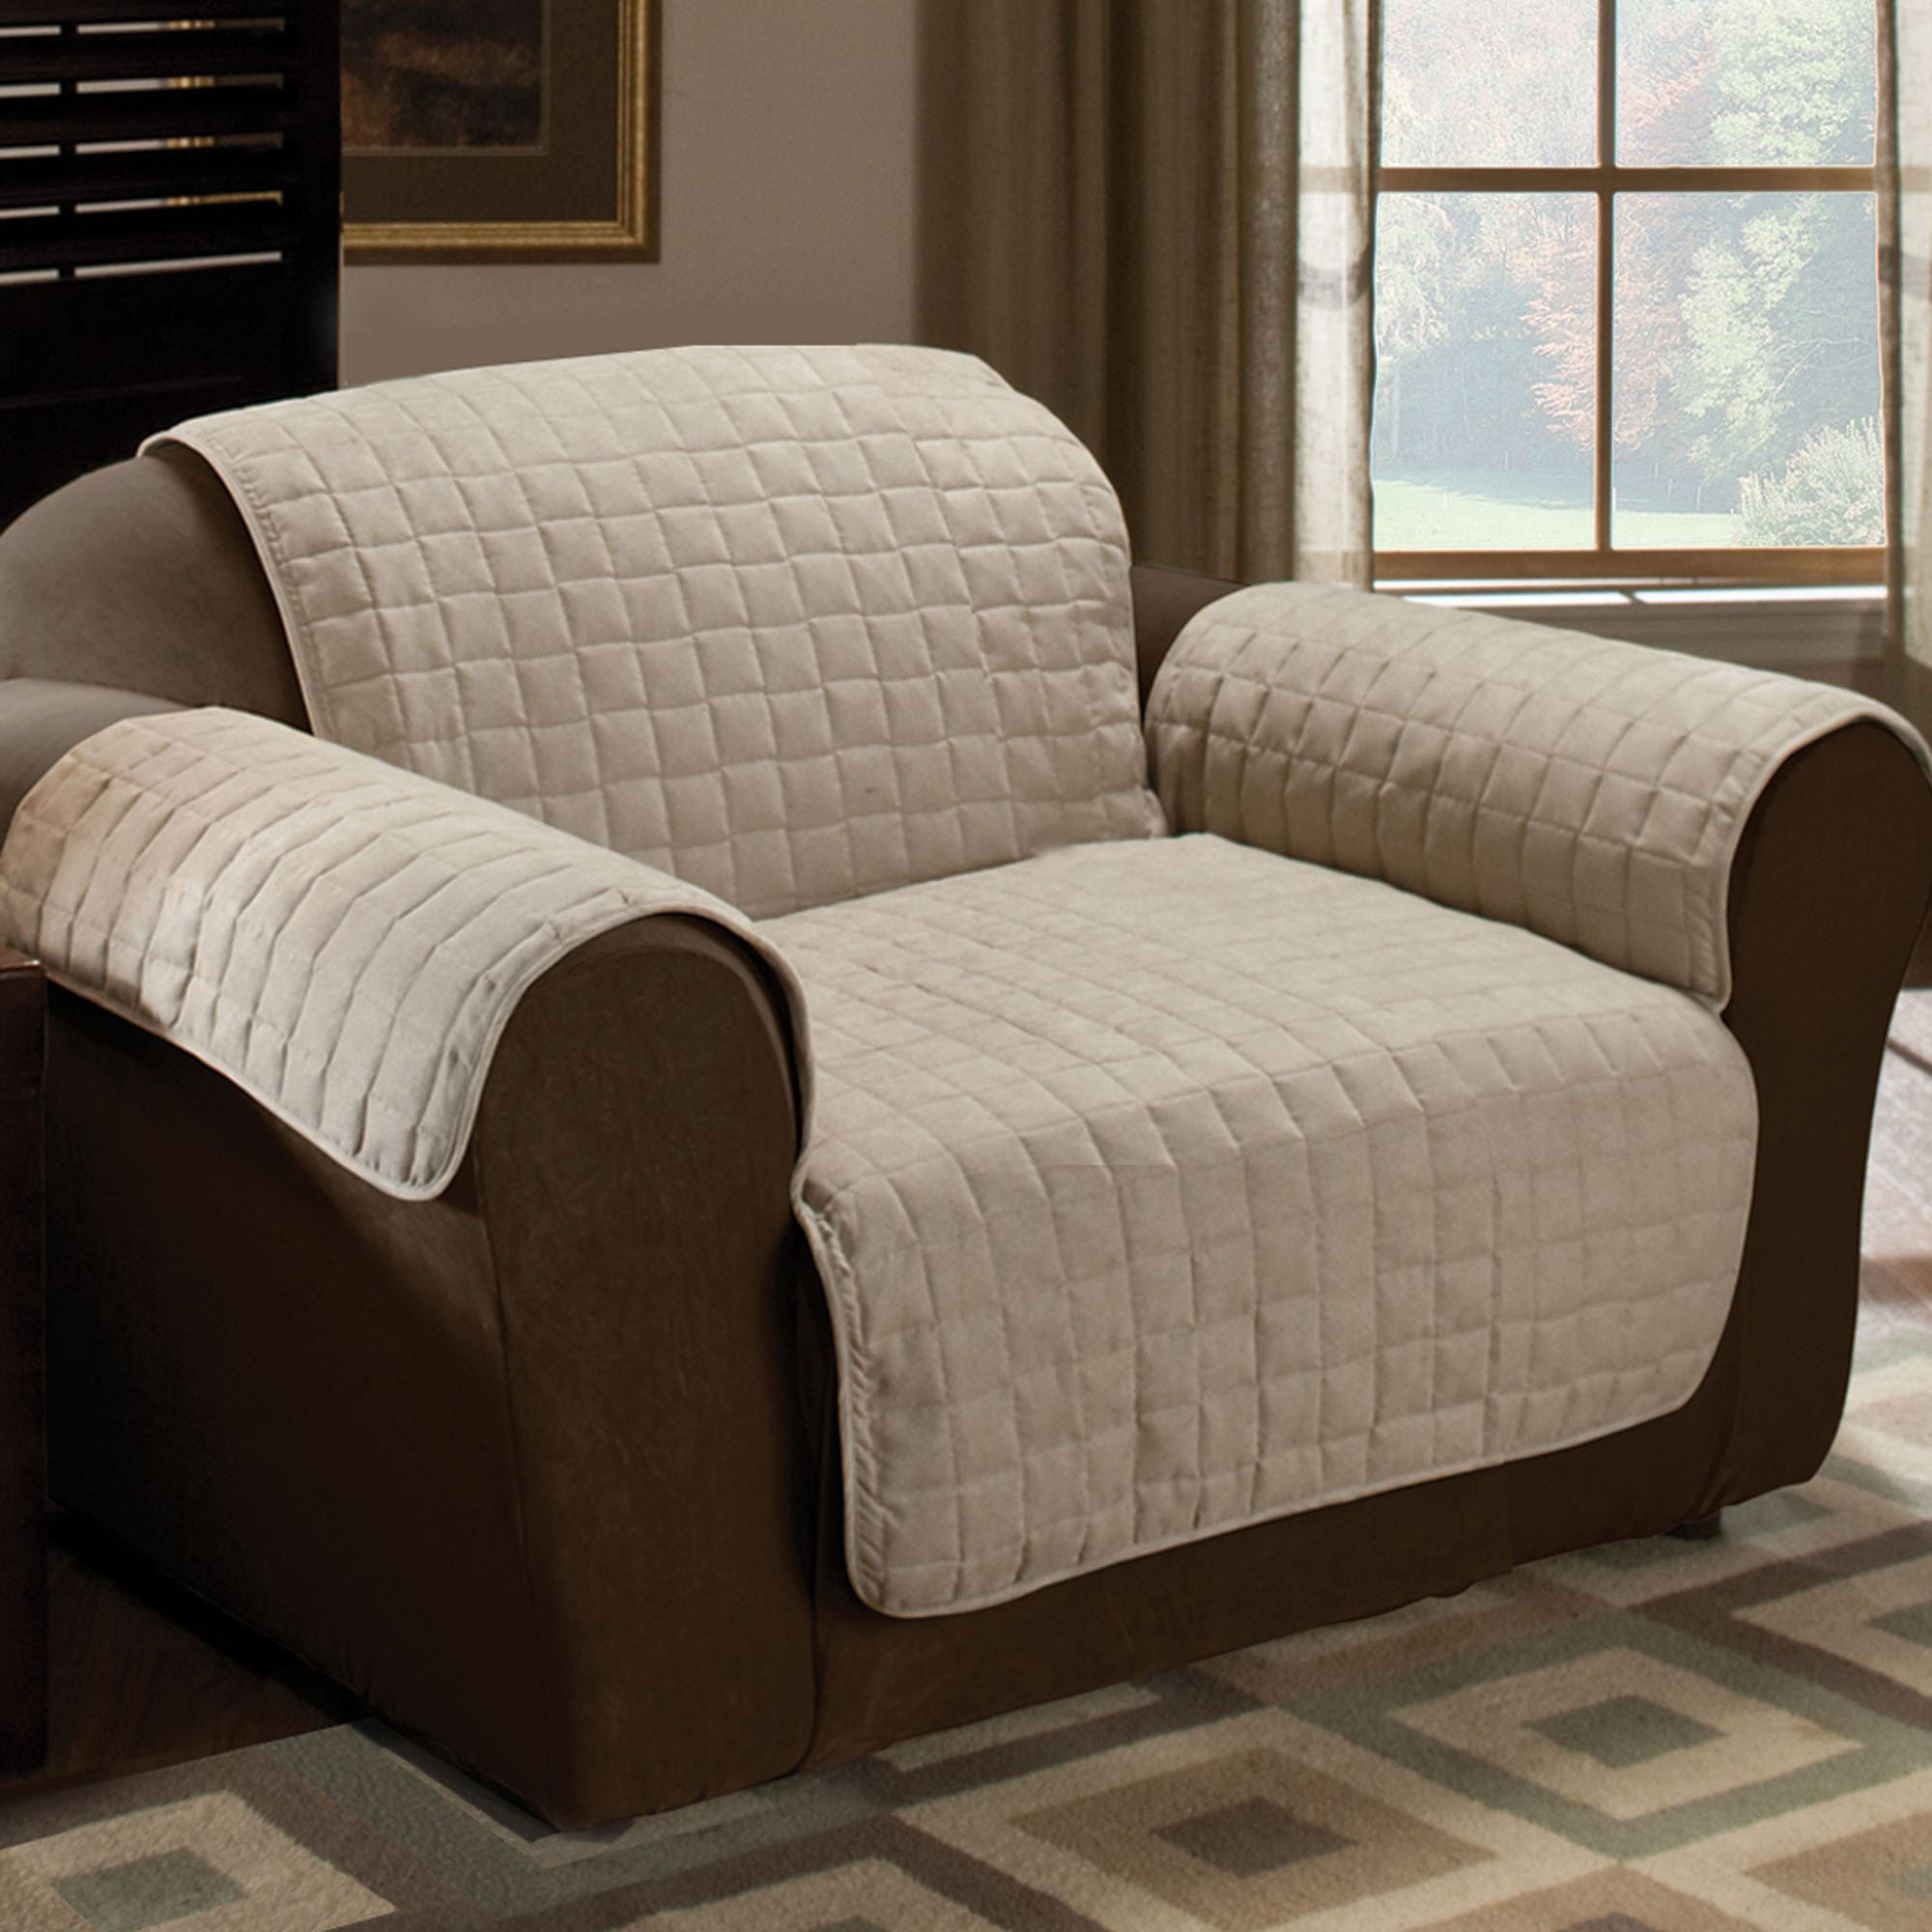 excellent oversized sofa slipcover inspiration-Finest Oversized sofa Slipcover Collection